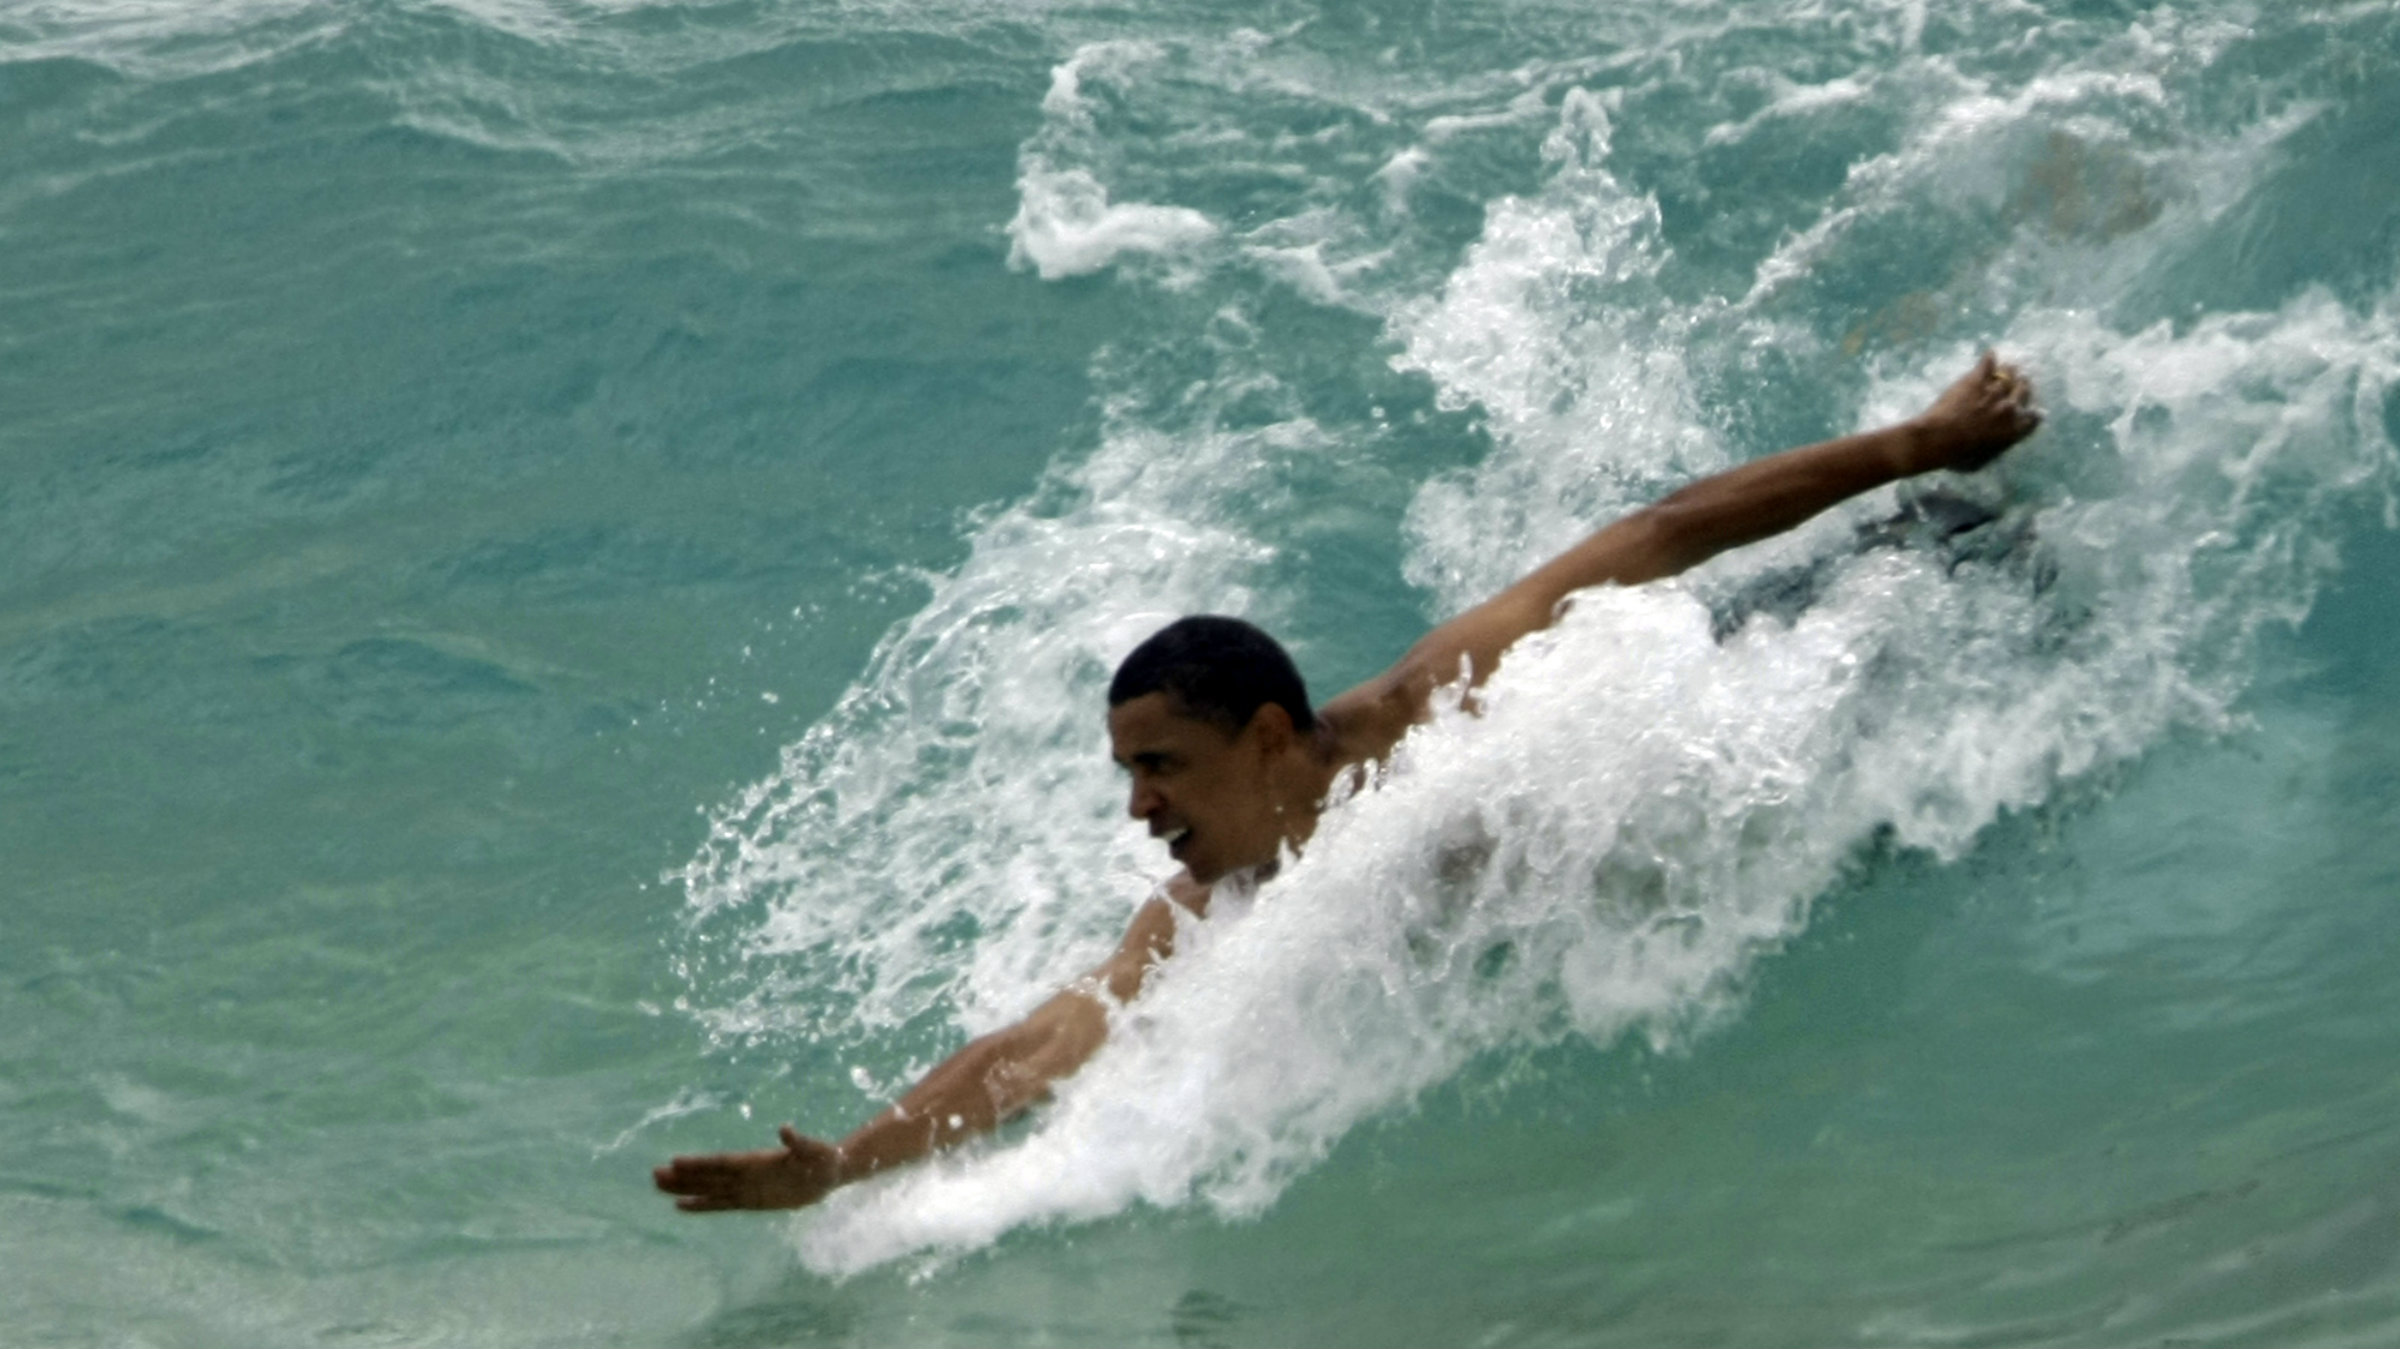 Rougher waters this time? President Obama bodysurfing during a previous vacation in Hawaii. He headed back there tonight after a fiscal cliff was averted—but it's hardly smooth sailing for markets and the economy now.